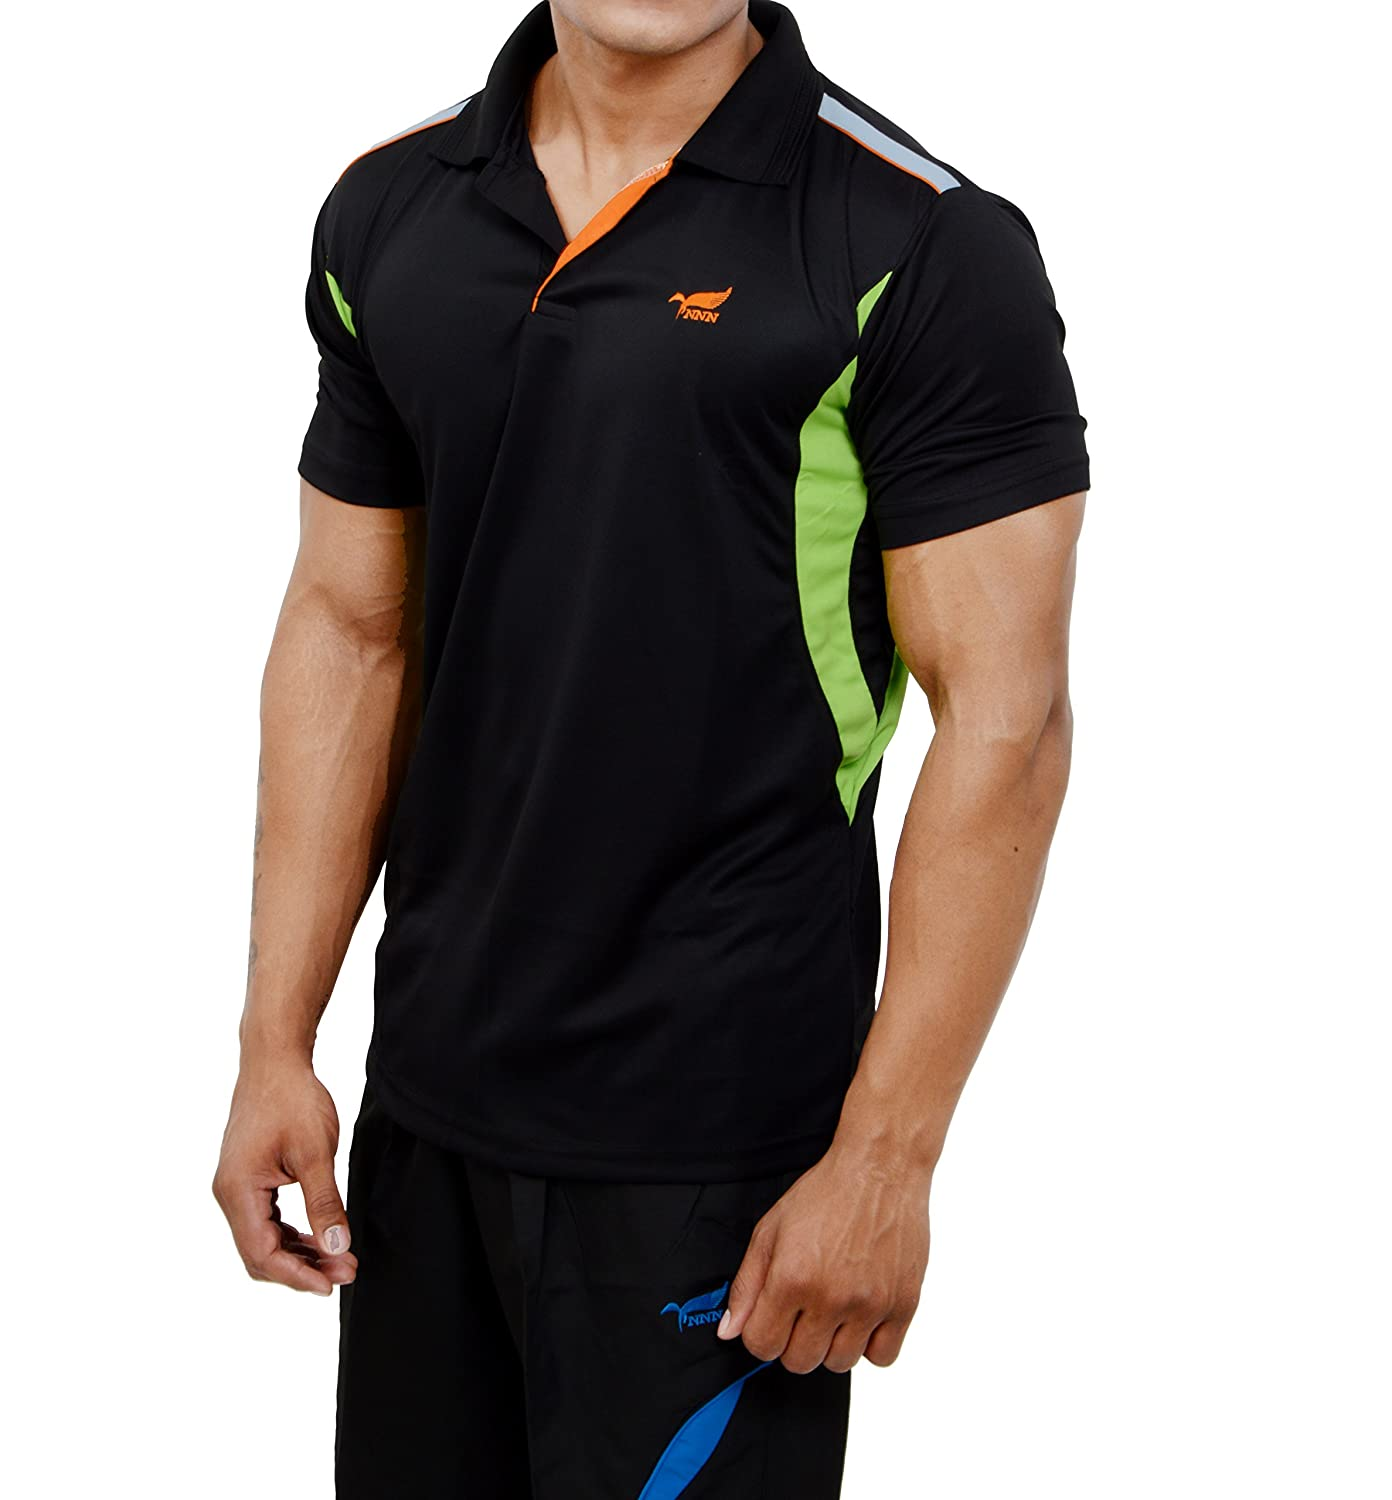 Black t shirt collar - Nnn Men S Polyester Dry Fit Sports T Shirt Amazon In Clothing Accessories